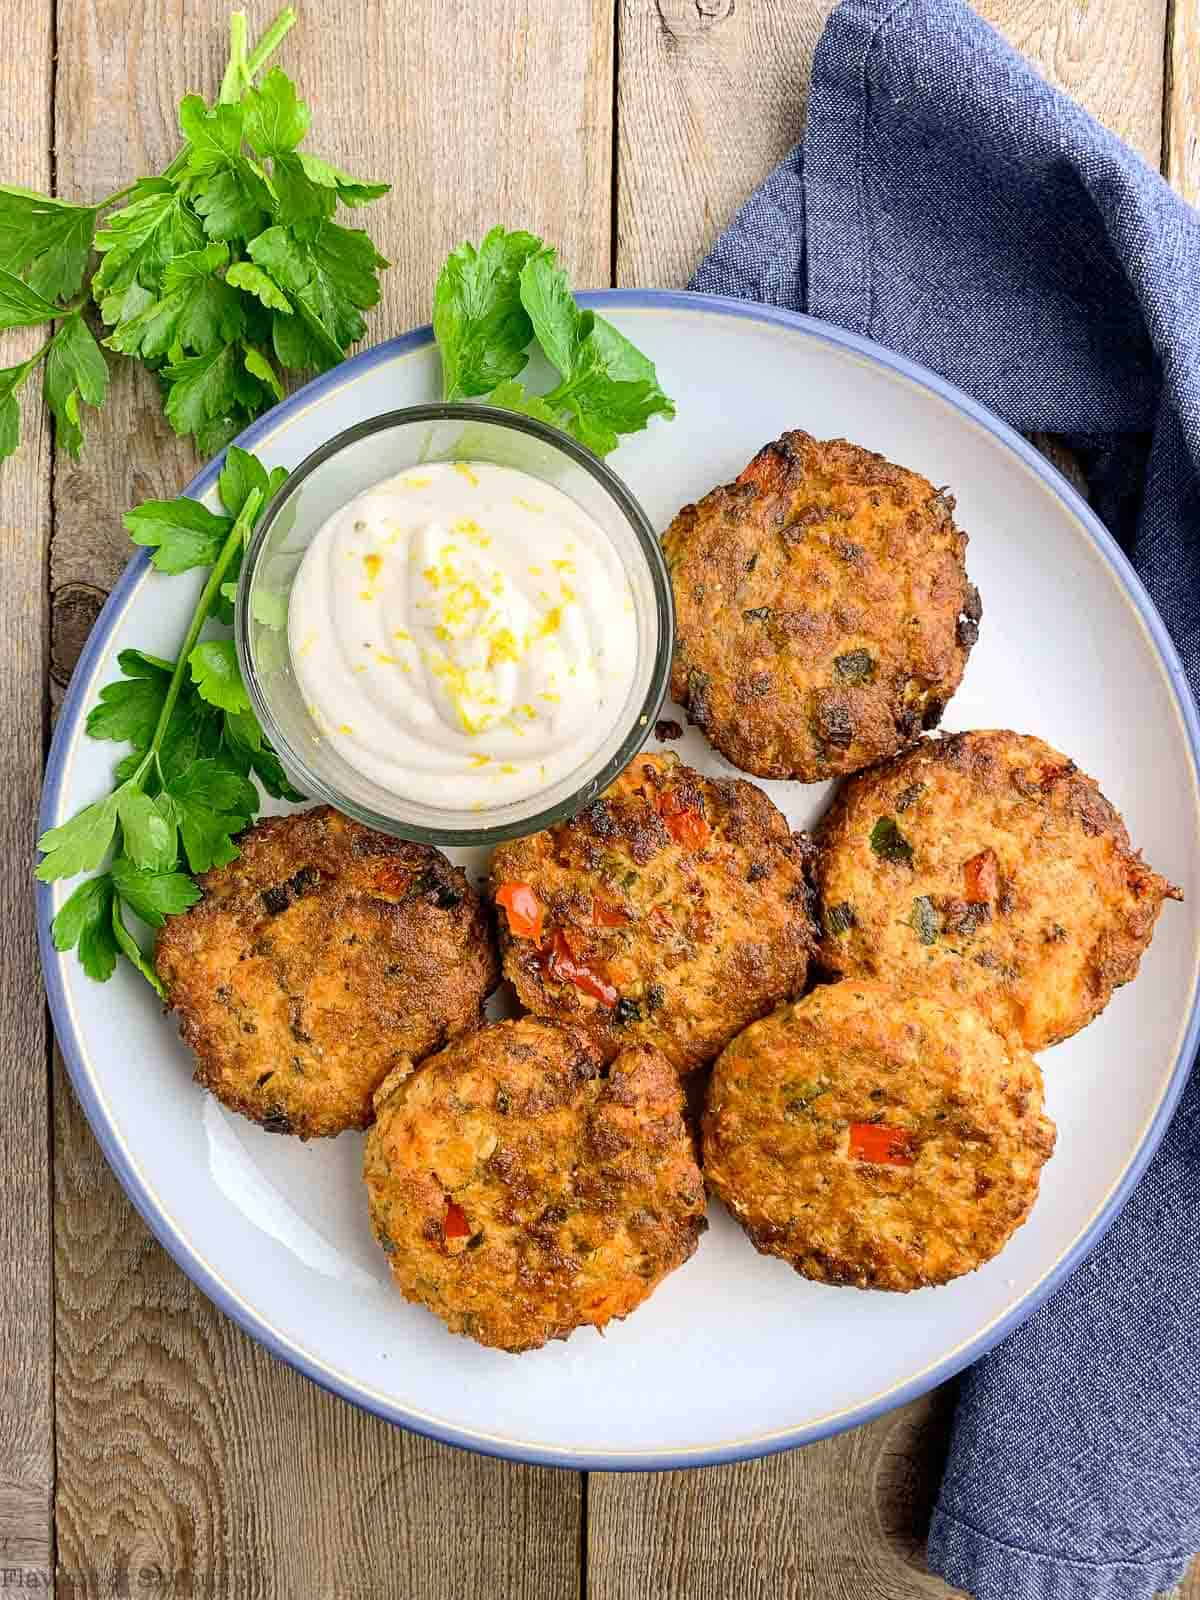 Overhead view of 6 salmon cakes on a plate with lemon aioli dip